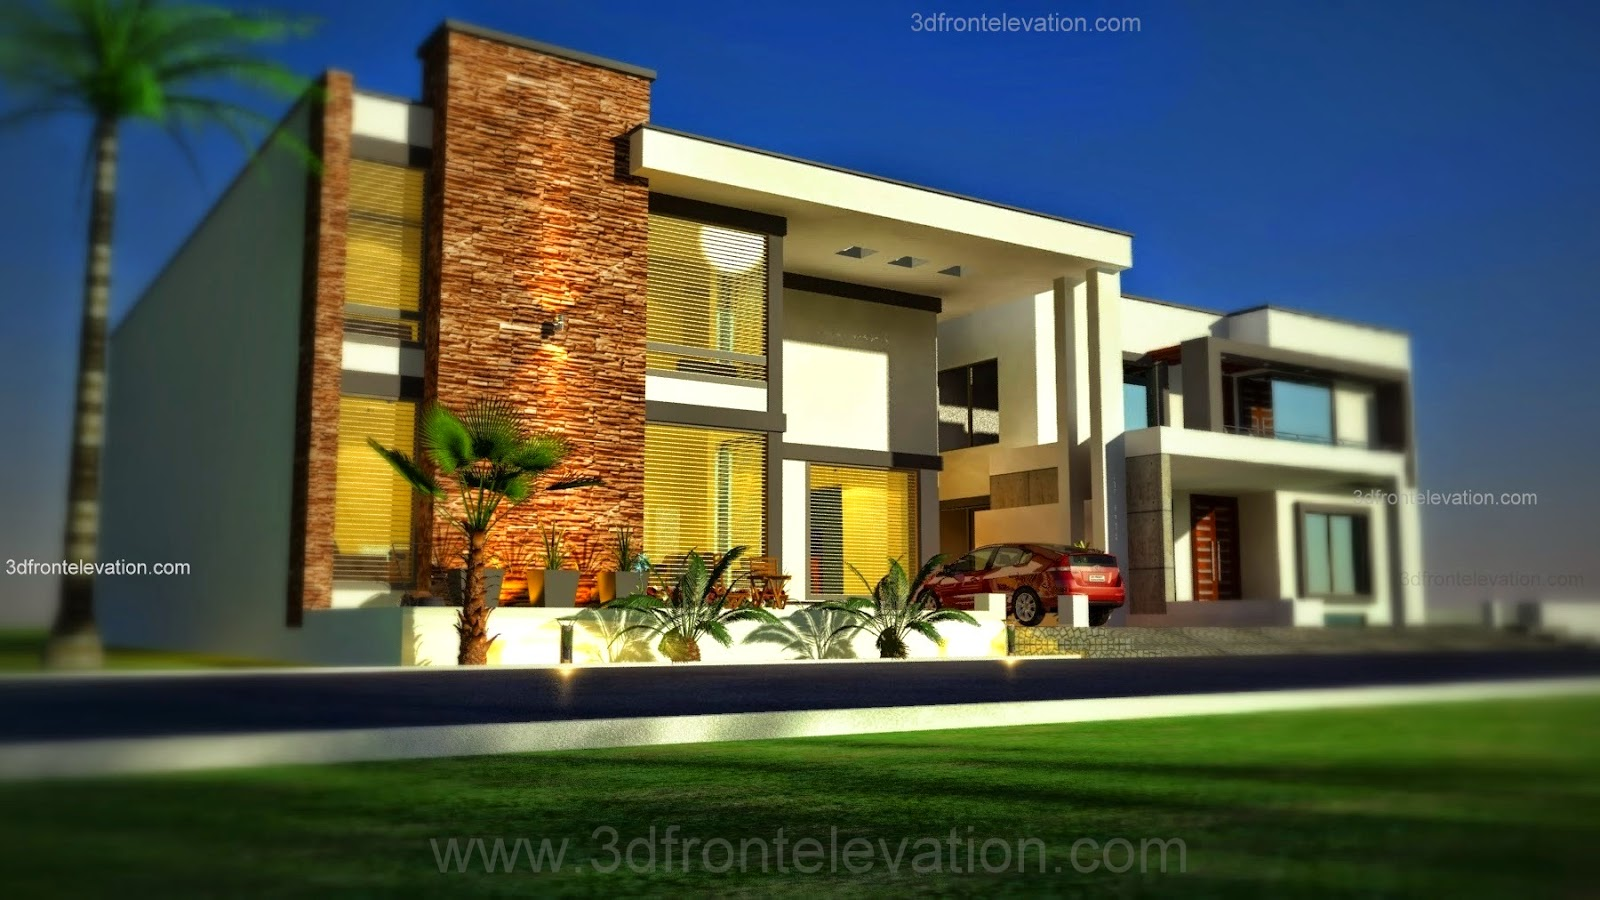 Home Design Ideas Elevation: 3D Front Elevation.com: 1 Kanal Modern + Simple + Elegant